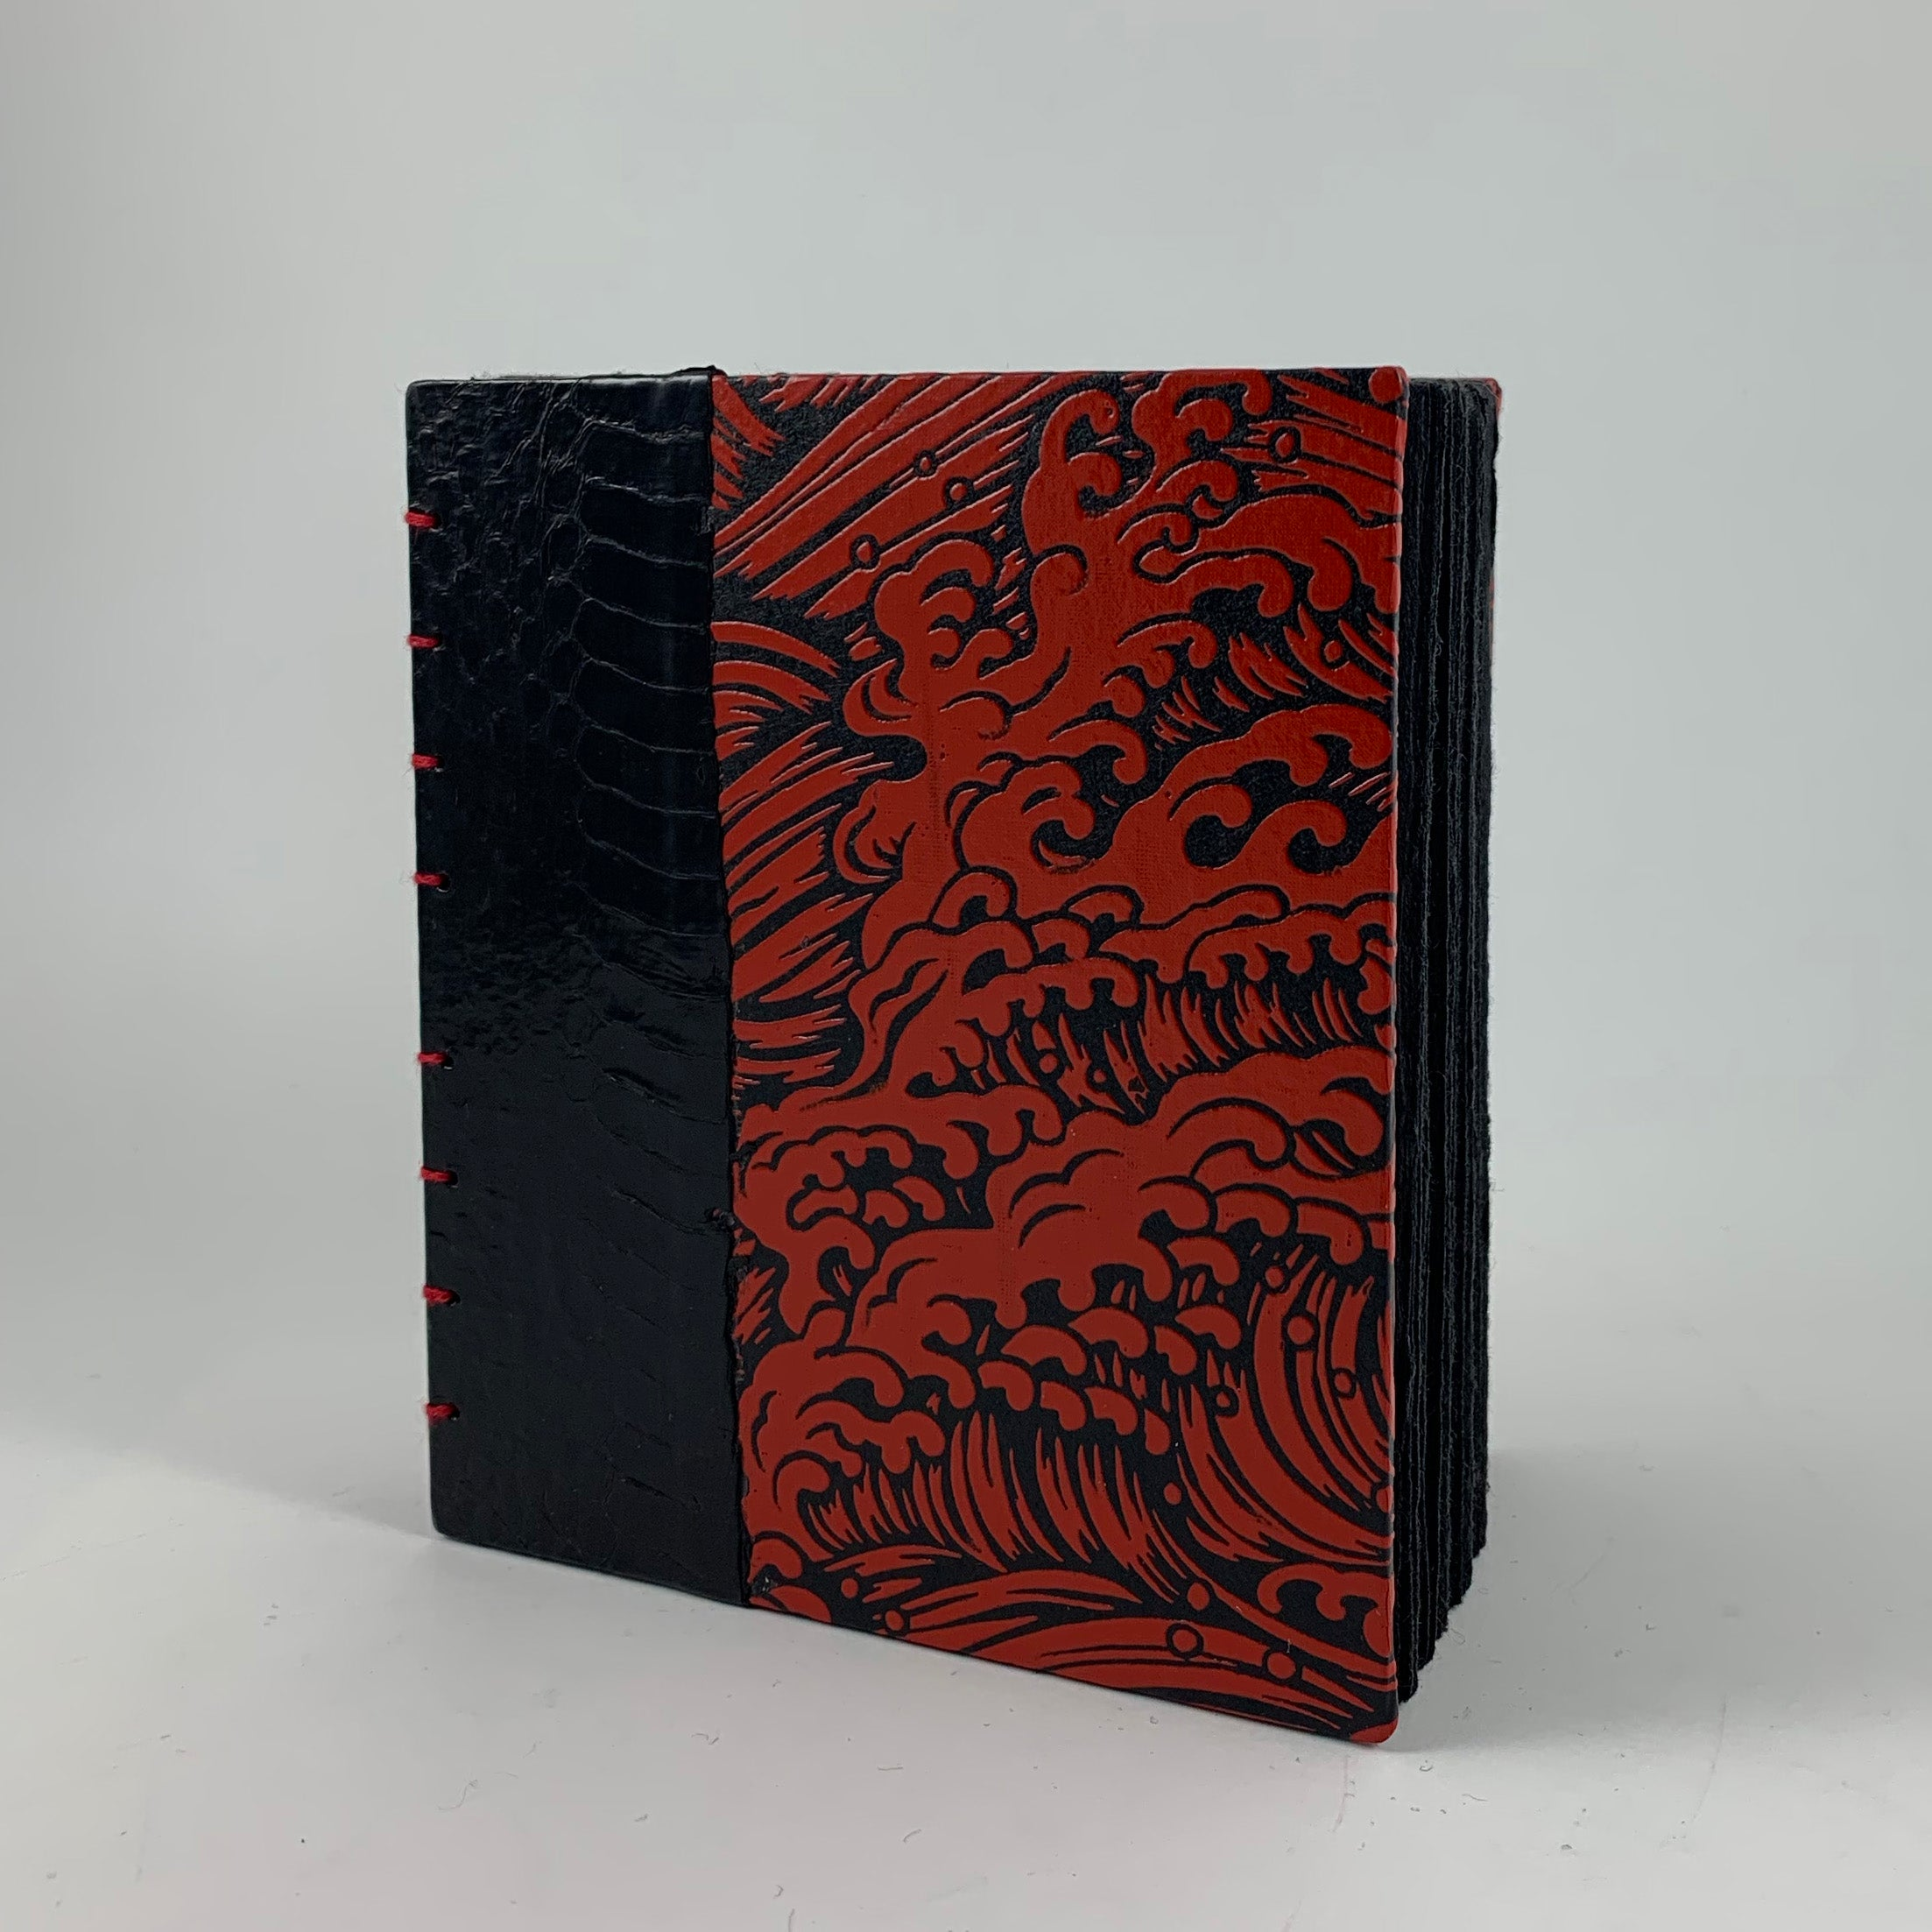 "Journal/Sketchbook (Black Snakeskin, Red Lacquer Yuzen) 4.75"" x 4.25"""